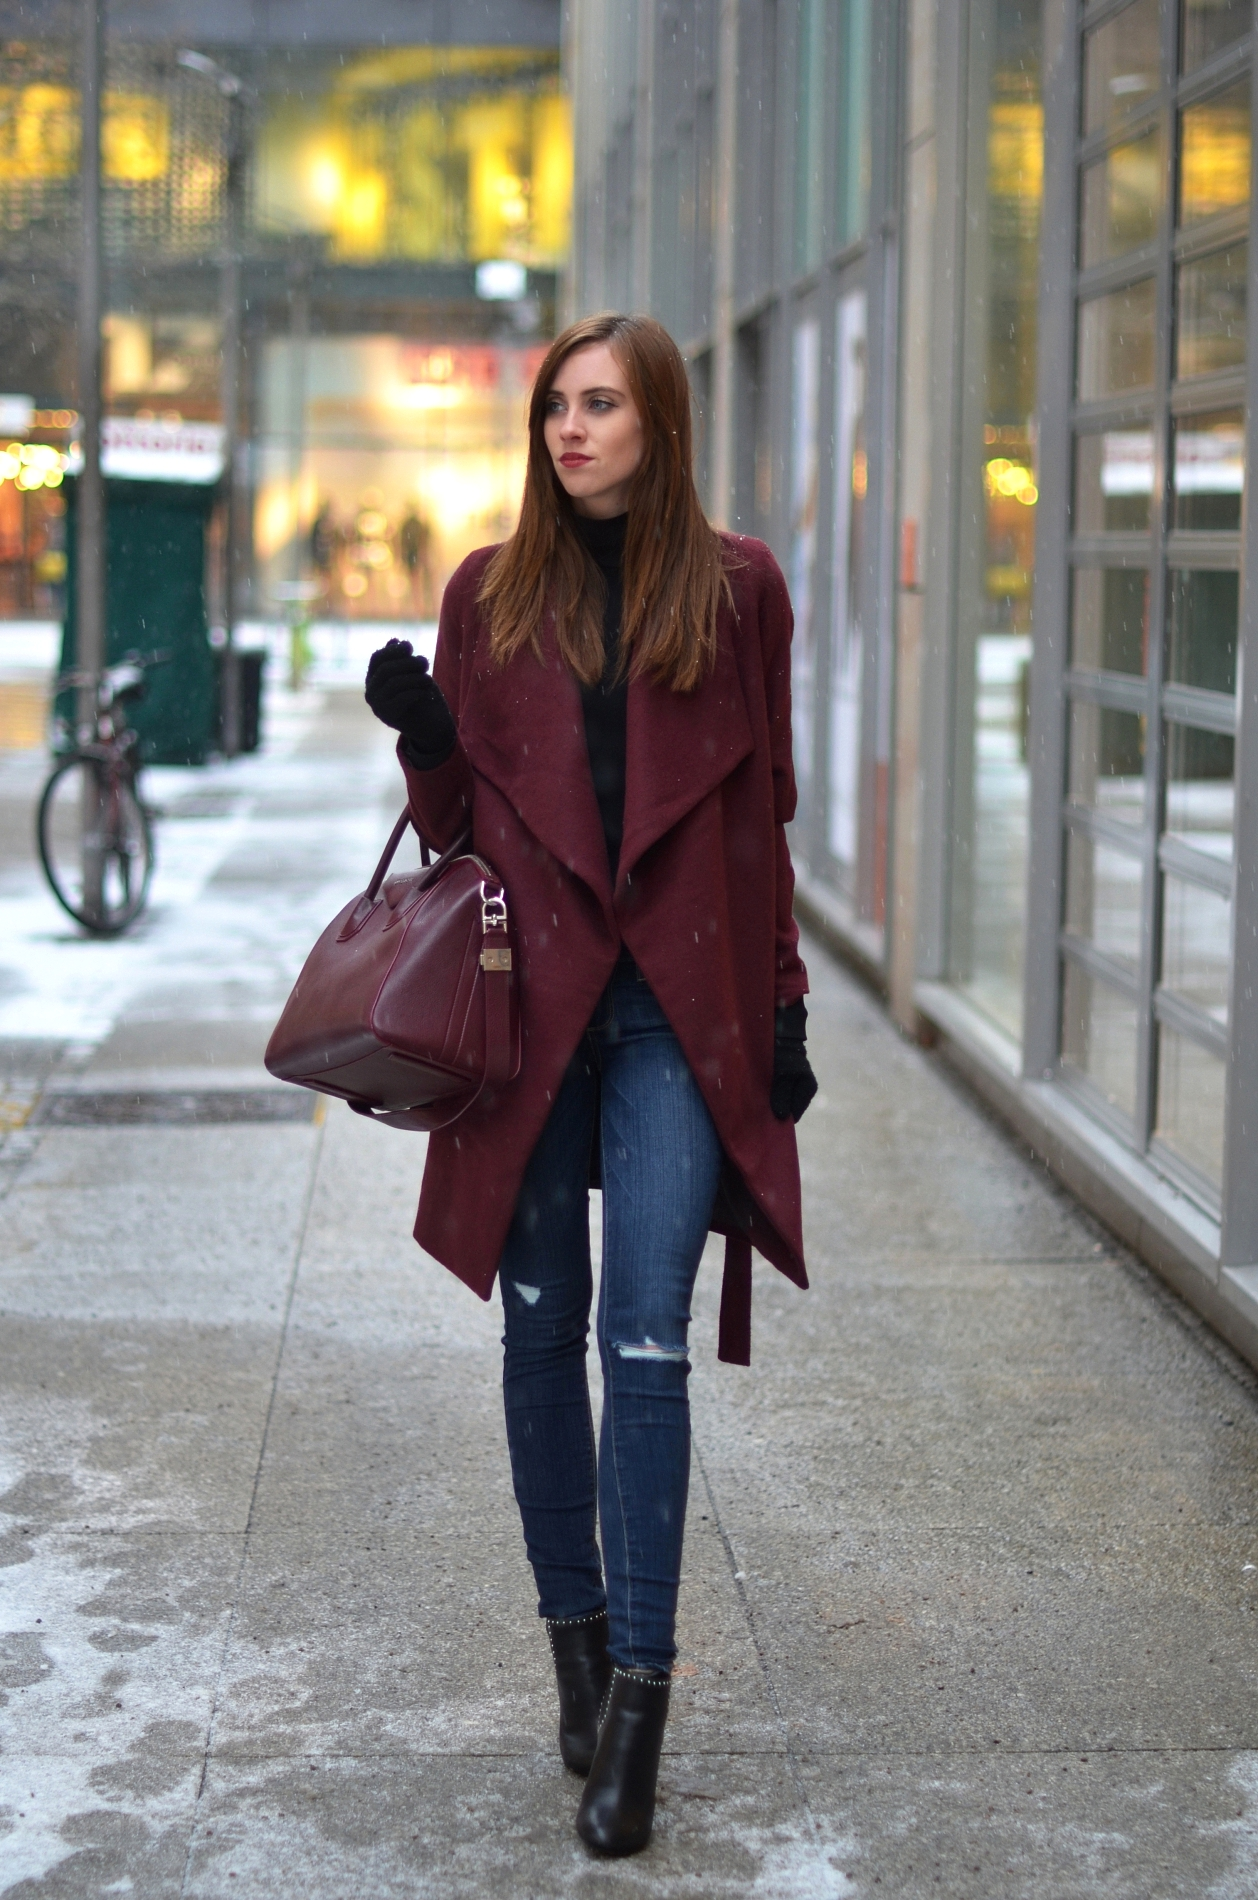 Plum is making a return this season! Barbora Ondrackova looks sophisticated and wintery in this cute plum overcoat, worn with skinny denim jeans and a matching handbag. Coat: Medicine, Turtleneck: Proenza Schouler, Jeans: Paige, Boots/Bag: Givenchy.